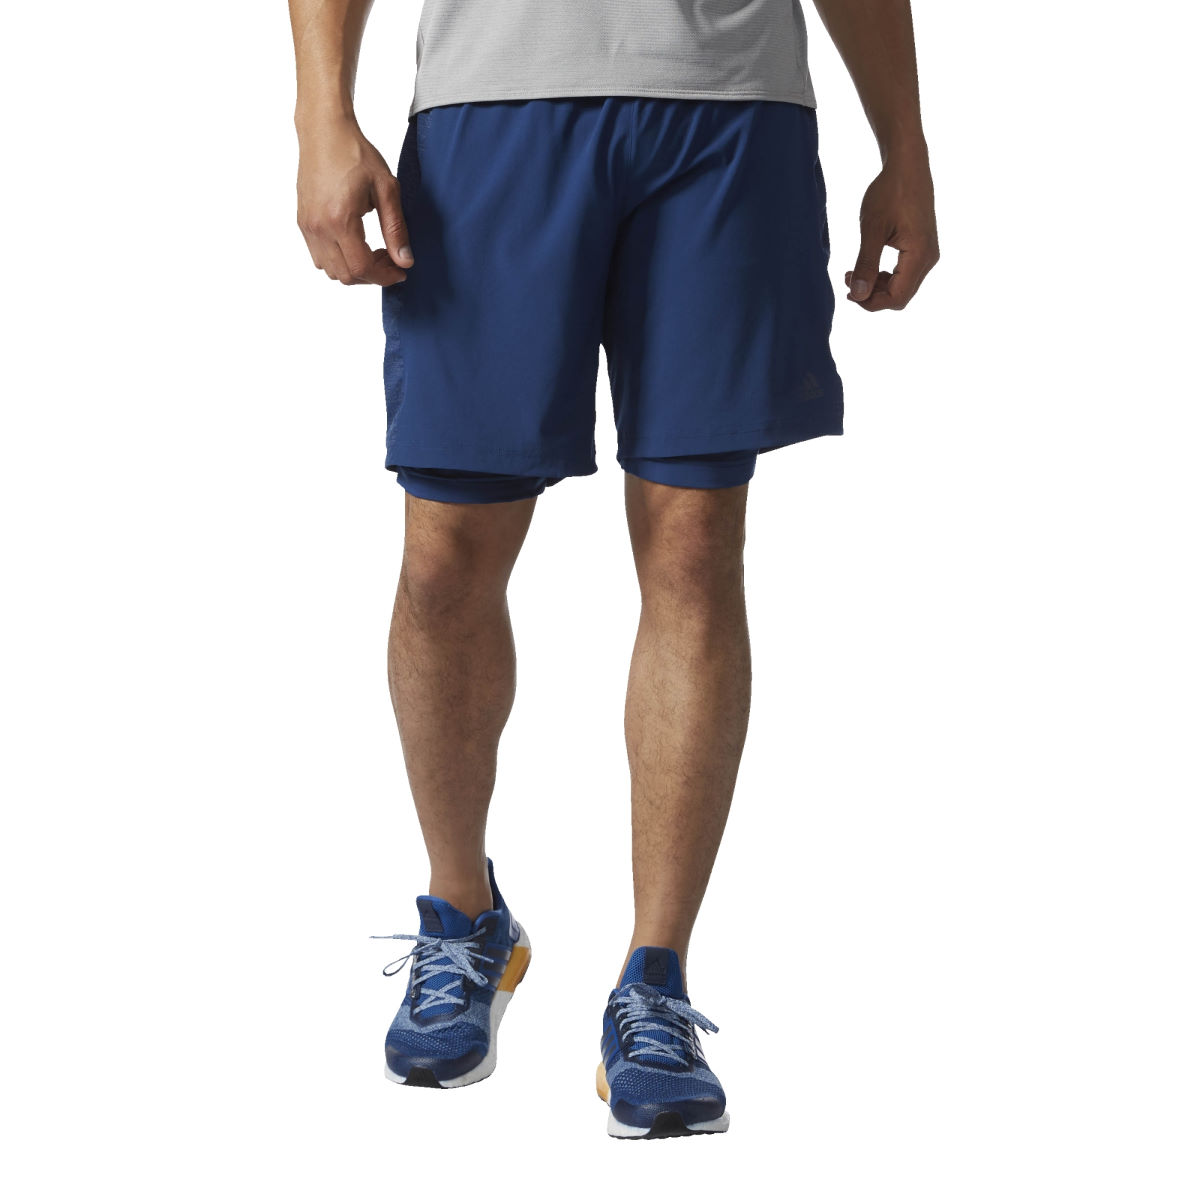 Adidas Supernova Dual Short (SS17)   Running Shorts